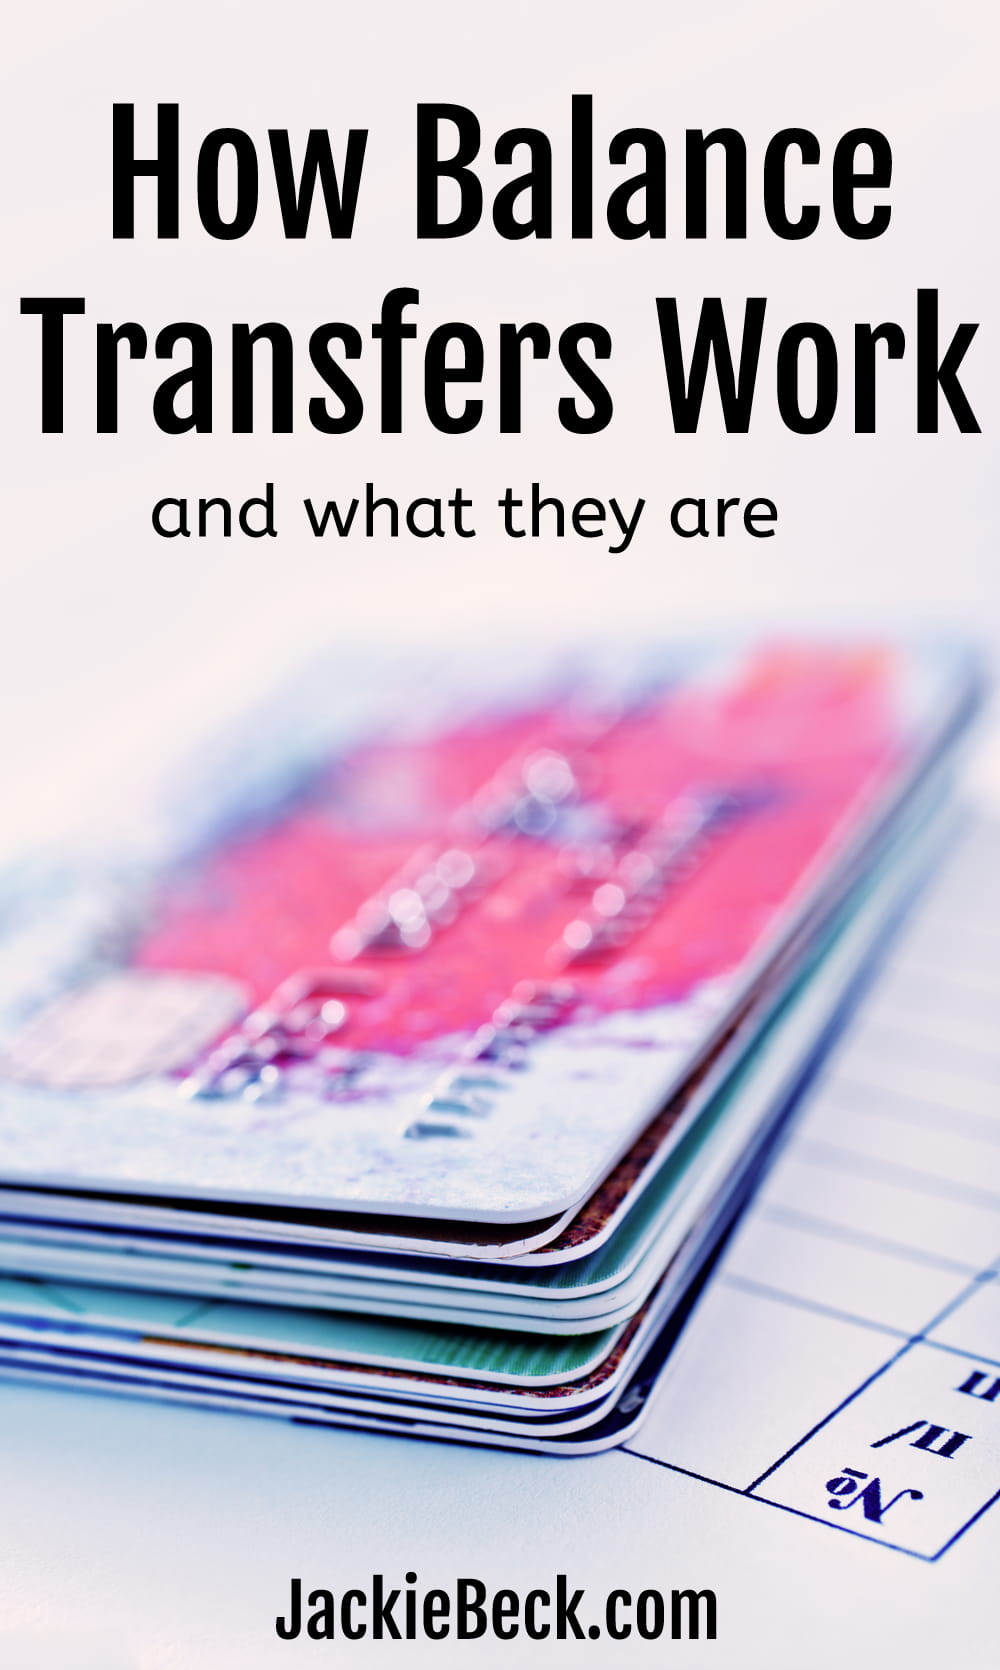 What balance transfers are and how they work